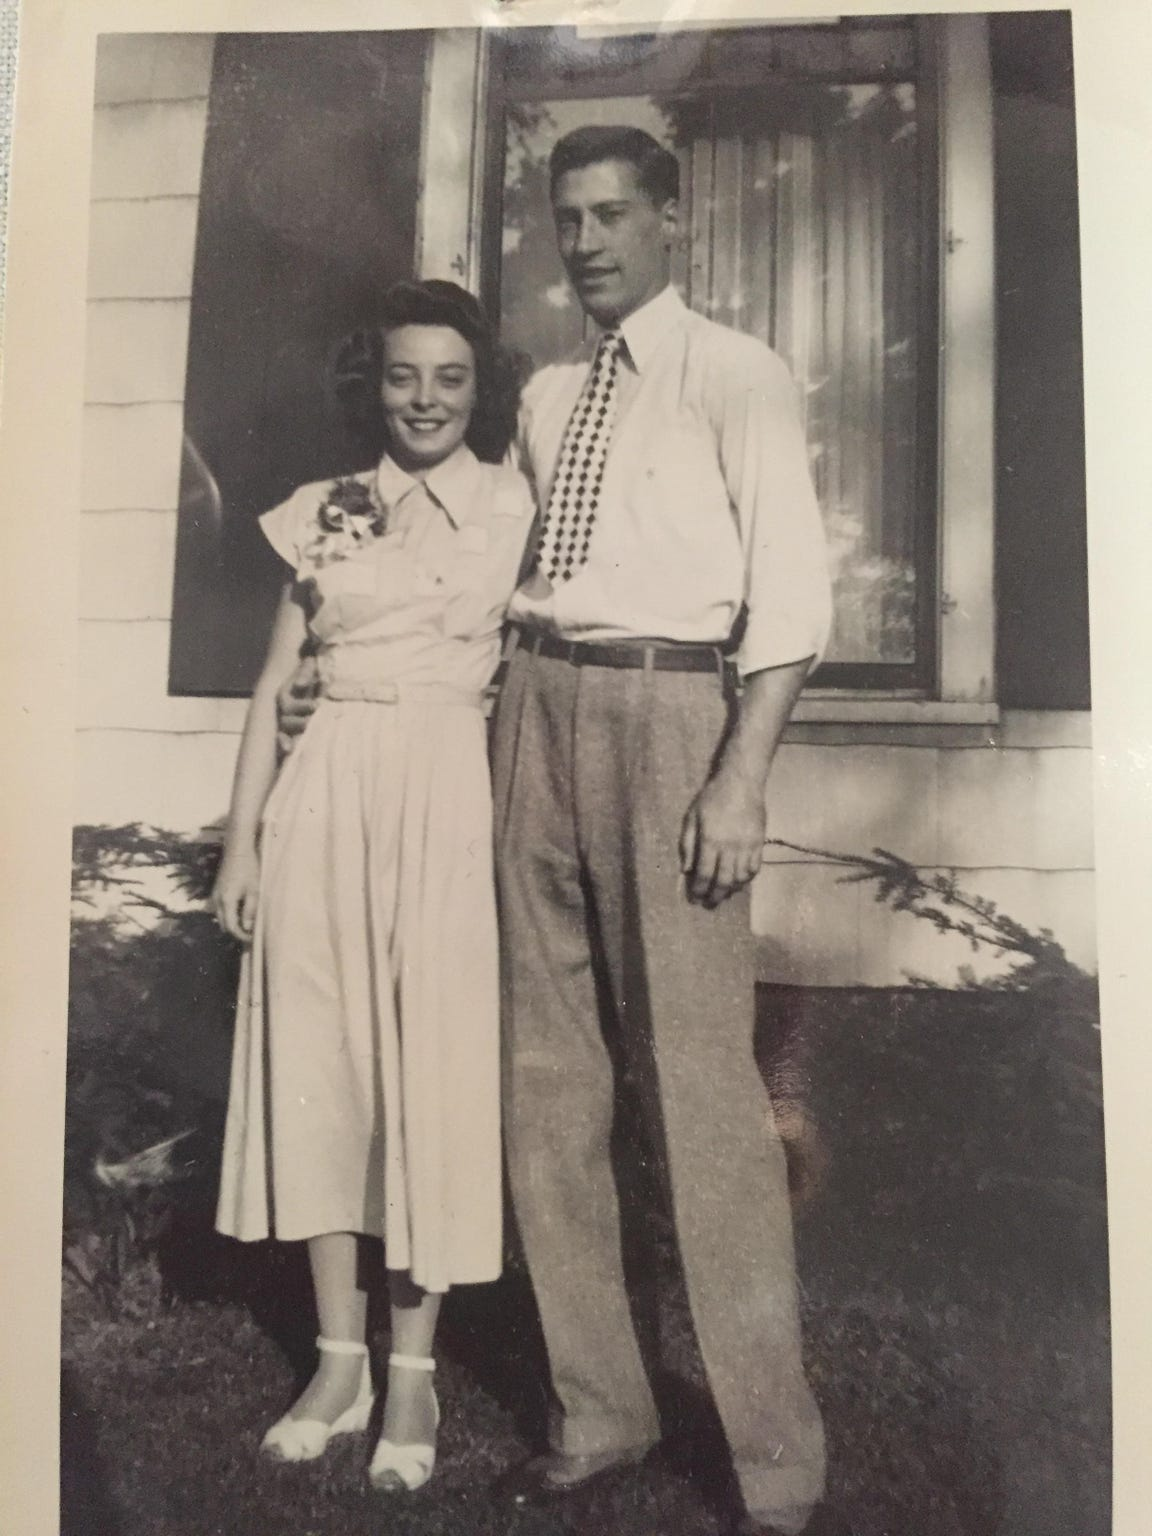 Stan and Frances Jones, taken sometimes in the 1950s as they were starting their lives together.